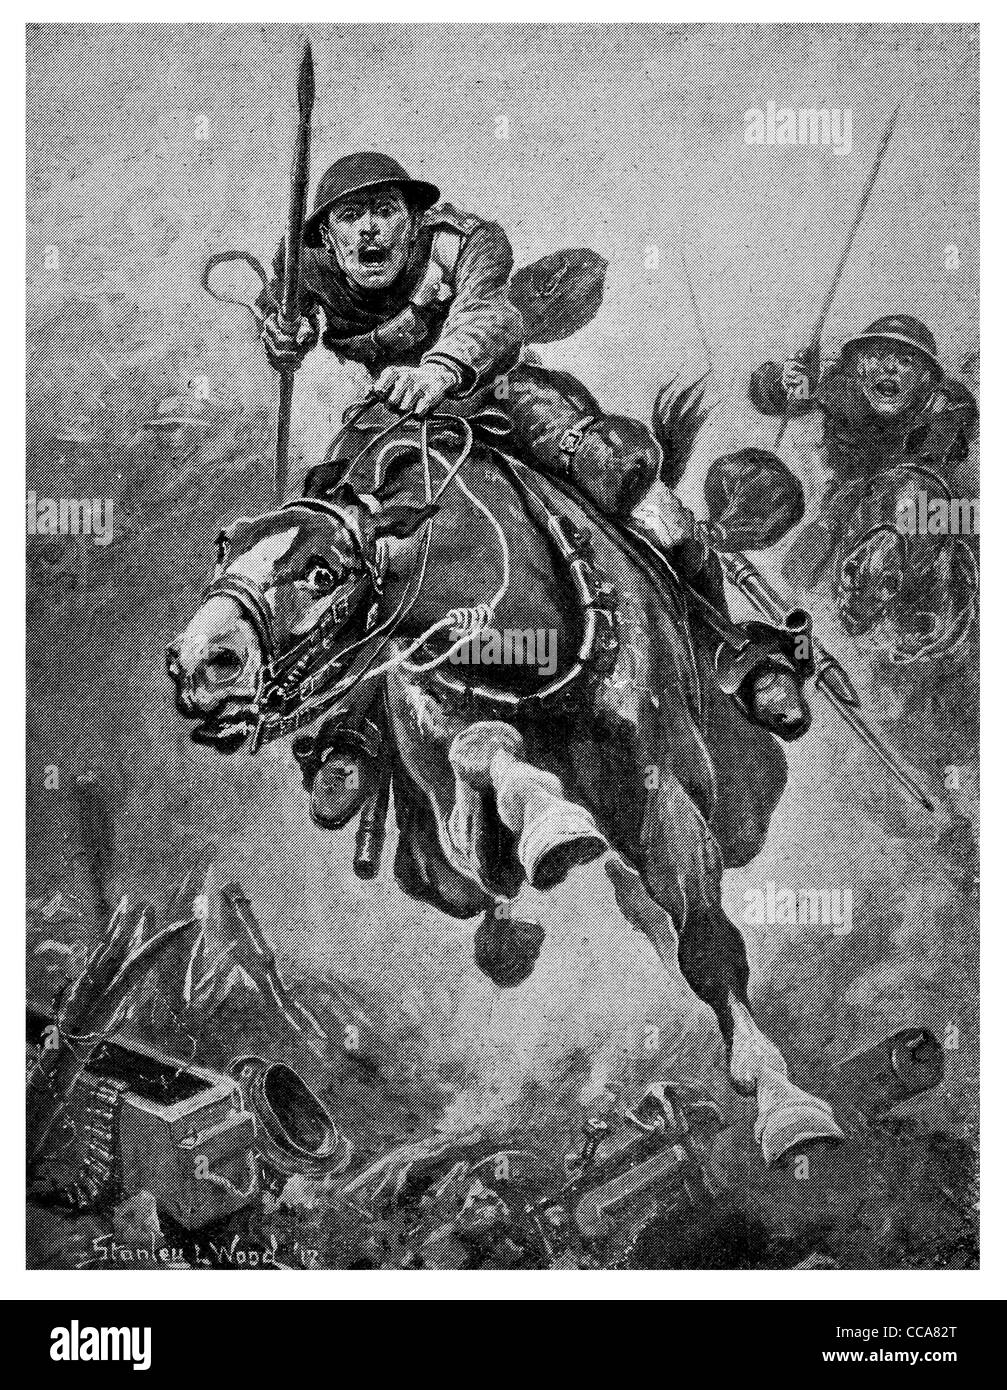 1917 British cavalry charge western front lance gallop charging horse bravery brave anger fear battlefield no mans - Stock Image